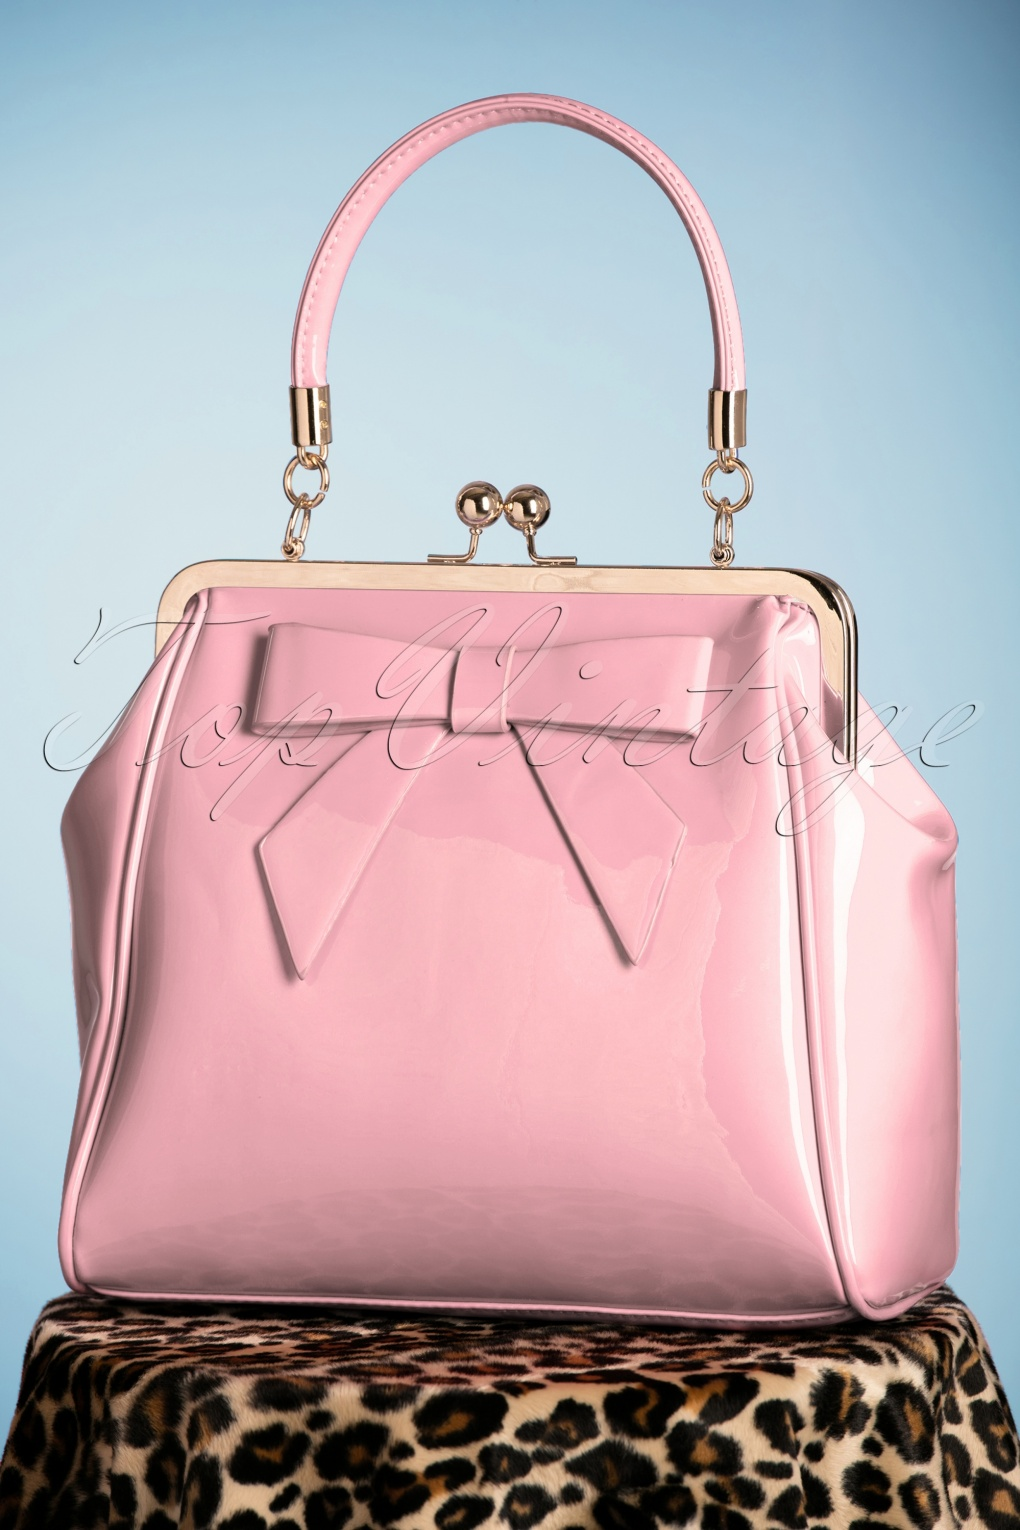 1960s Style Dresses, Clothing, Shoes UK 50s American Vintage Patent Bag in Pink £35.87 AT vintagedancer.com